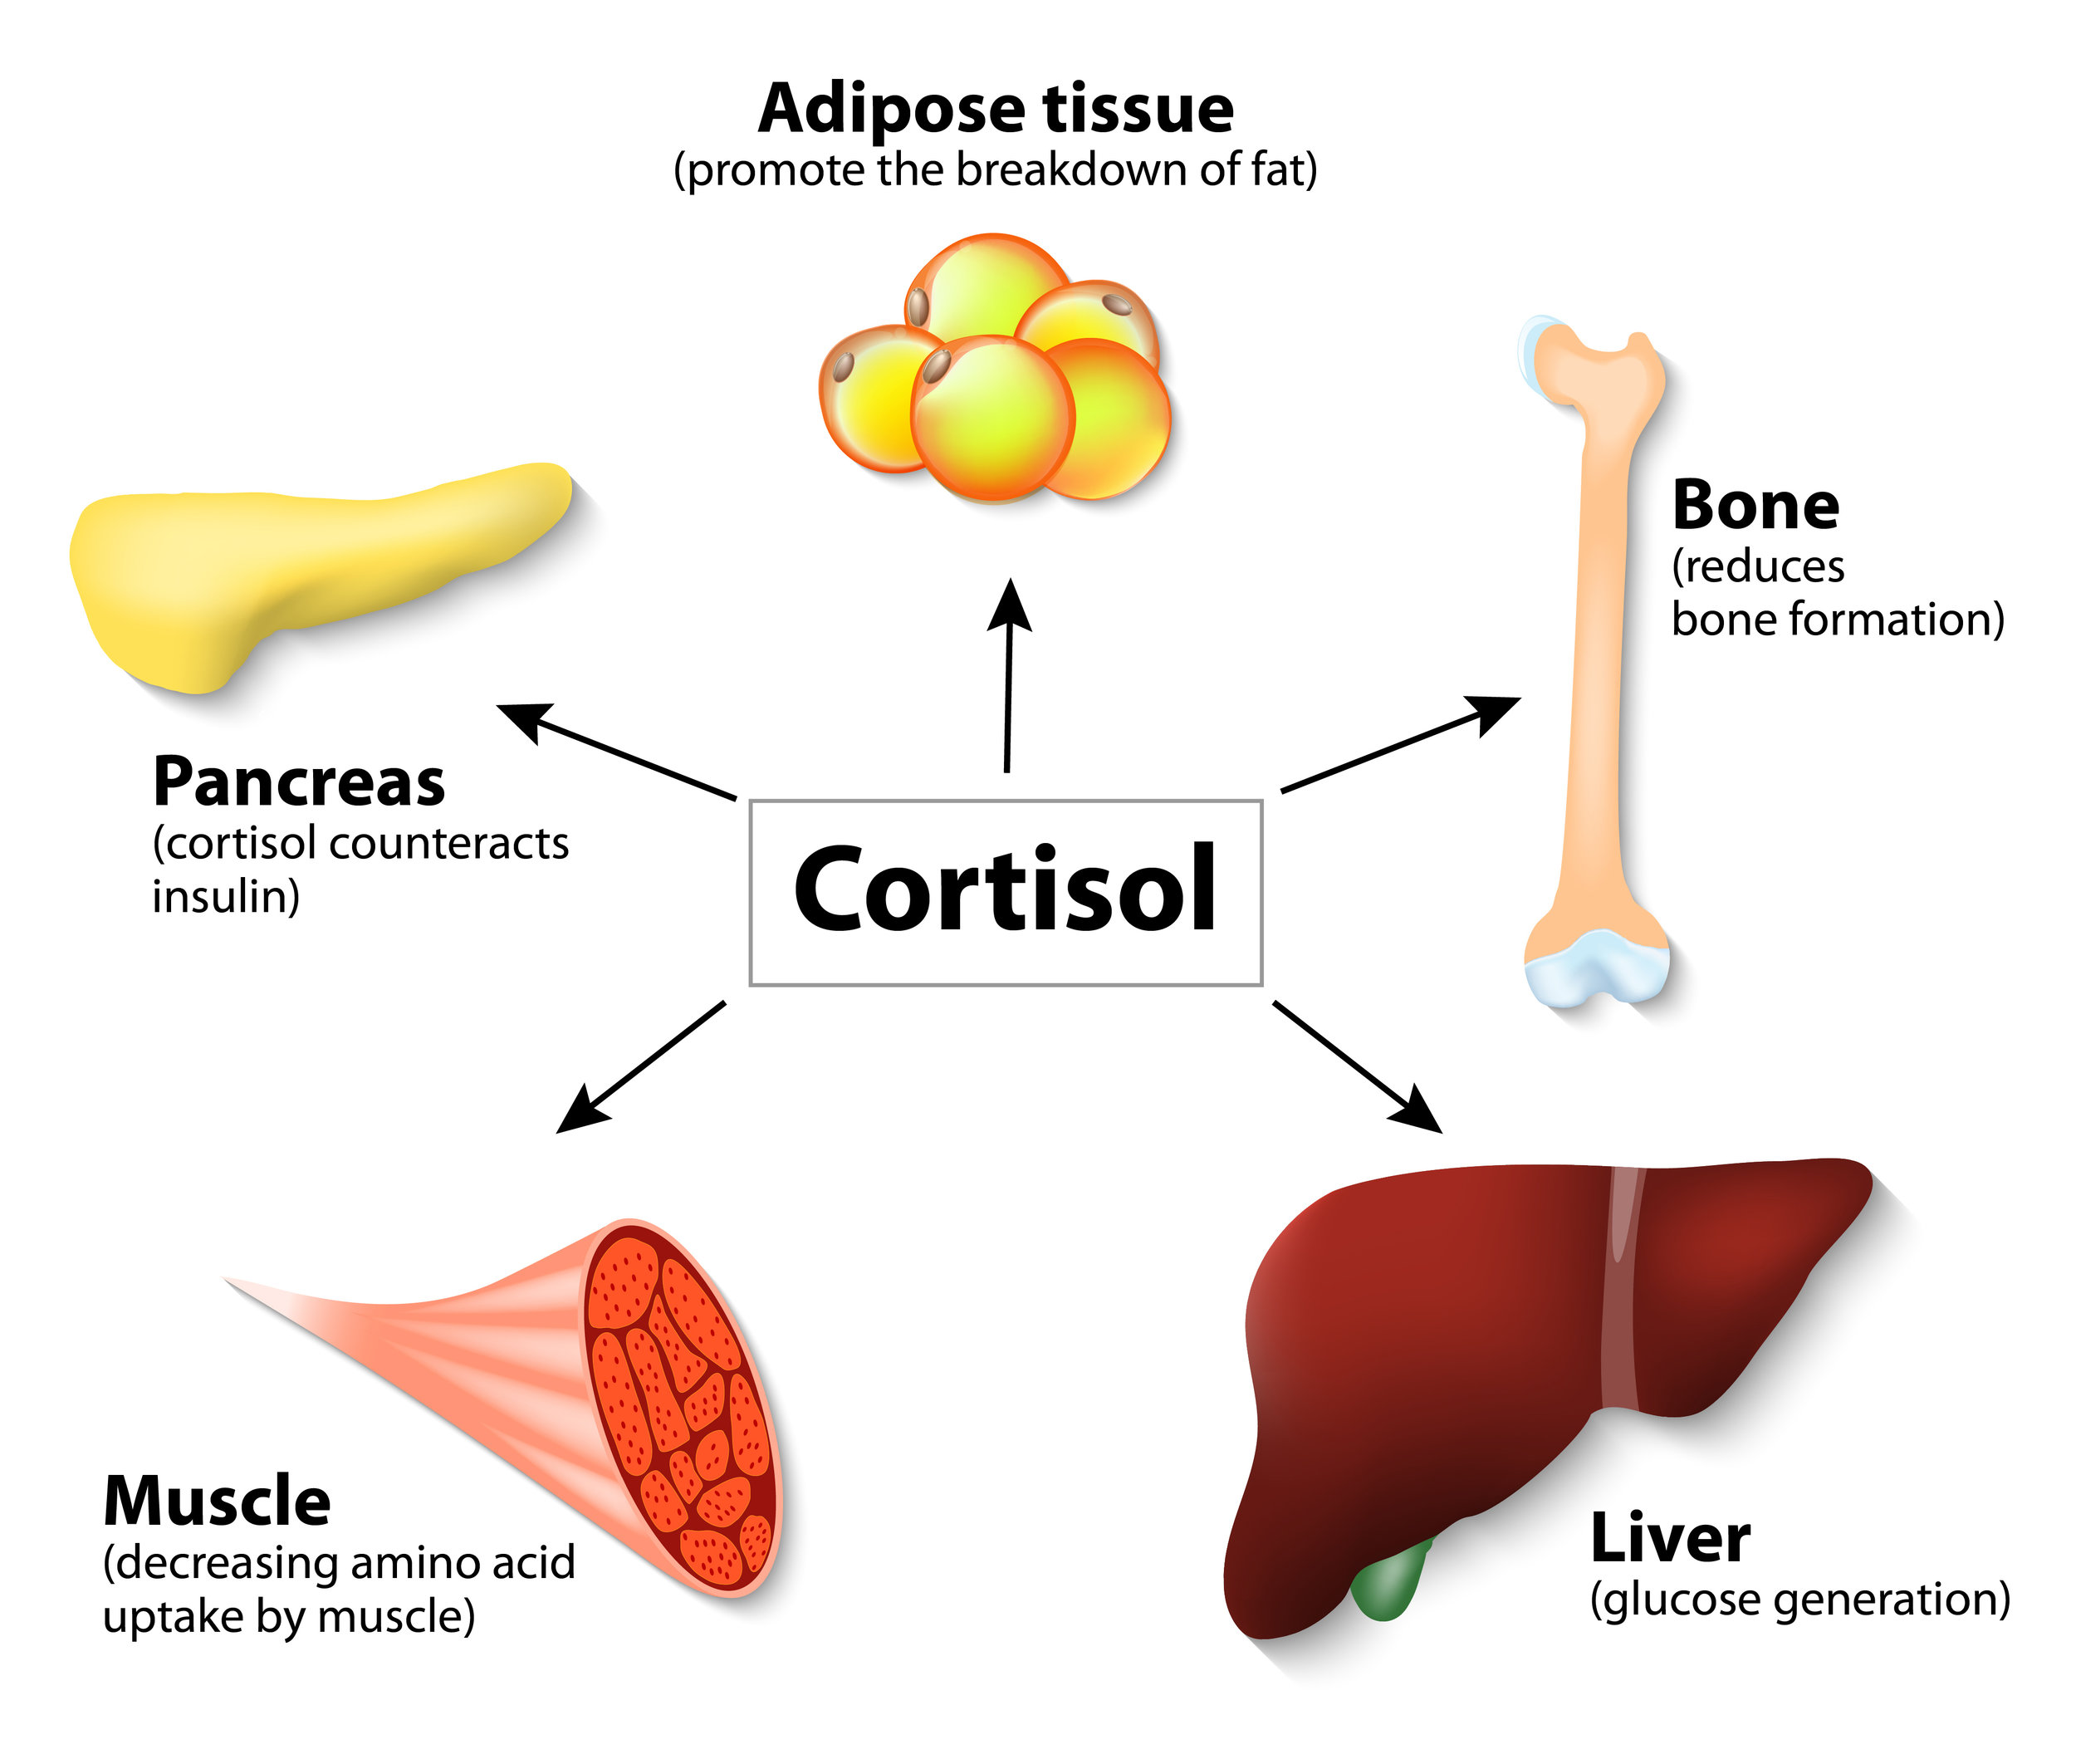 The impact of increased cortisol on the body.